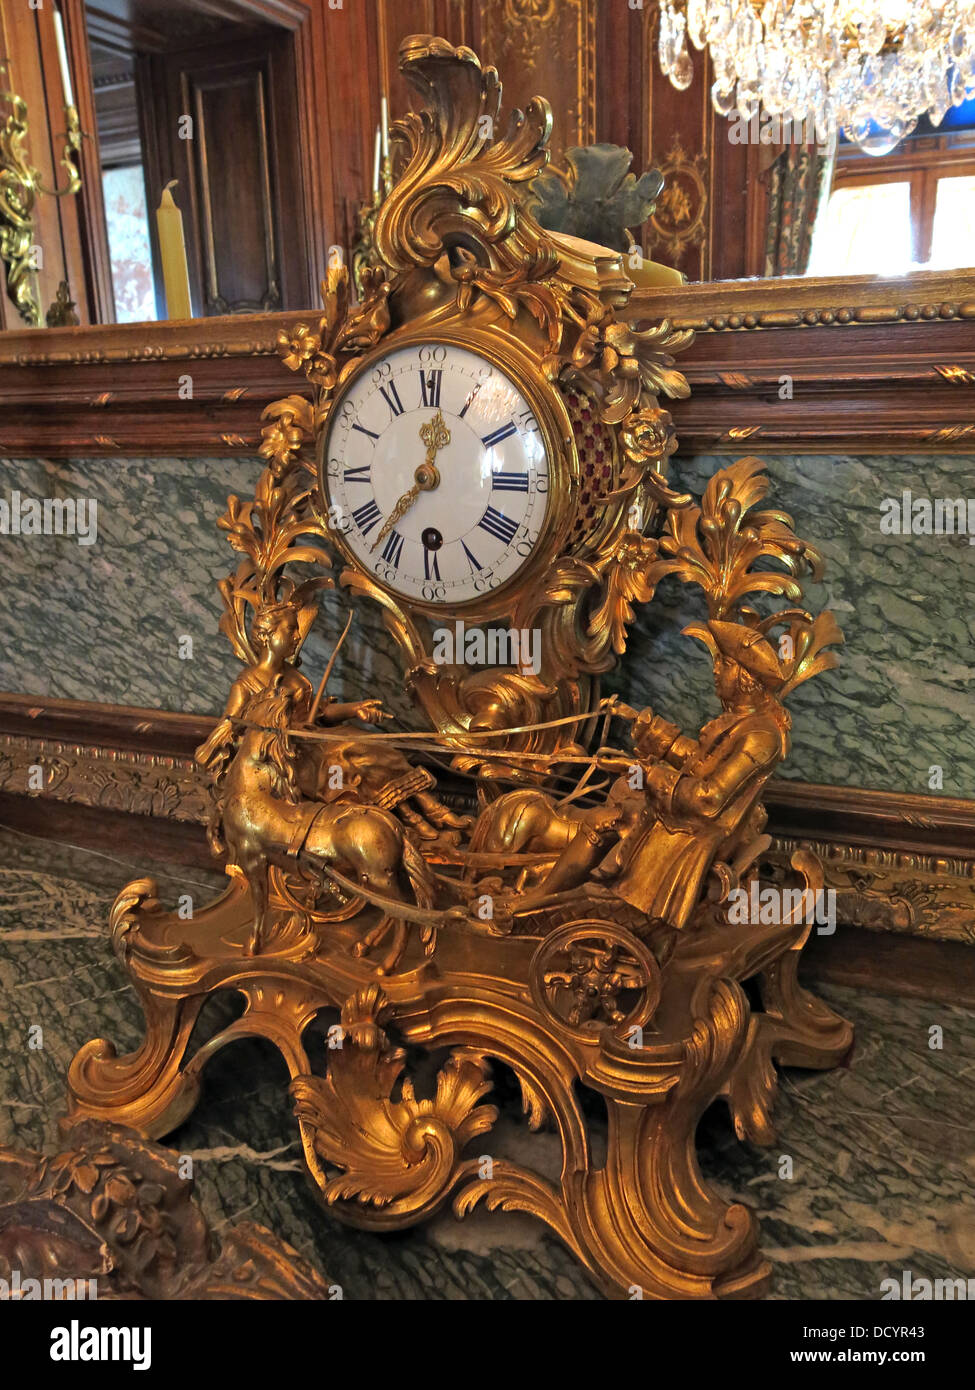 Gold mantlepiece clock at Waddesdon Manor , National Trust England UK - Stock Image